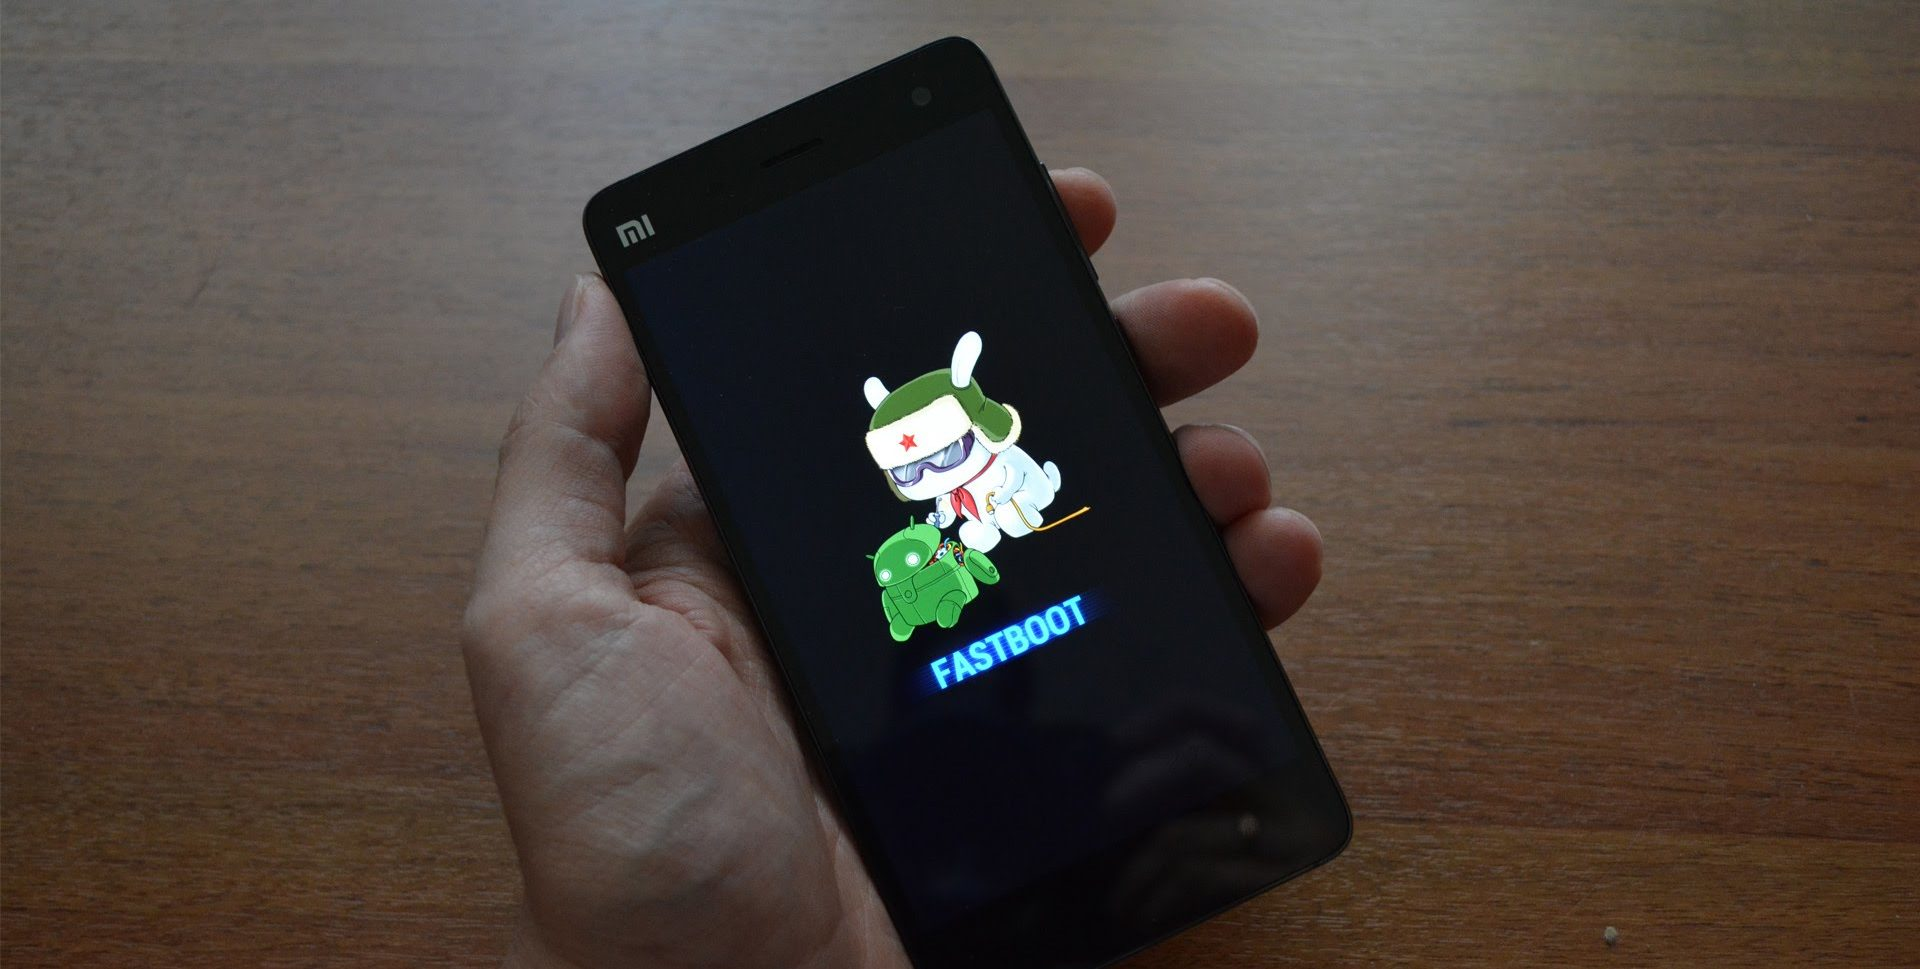 miui fastboot